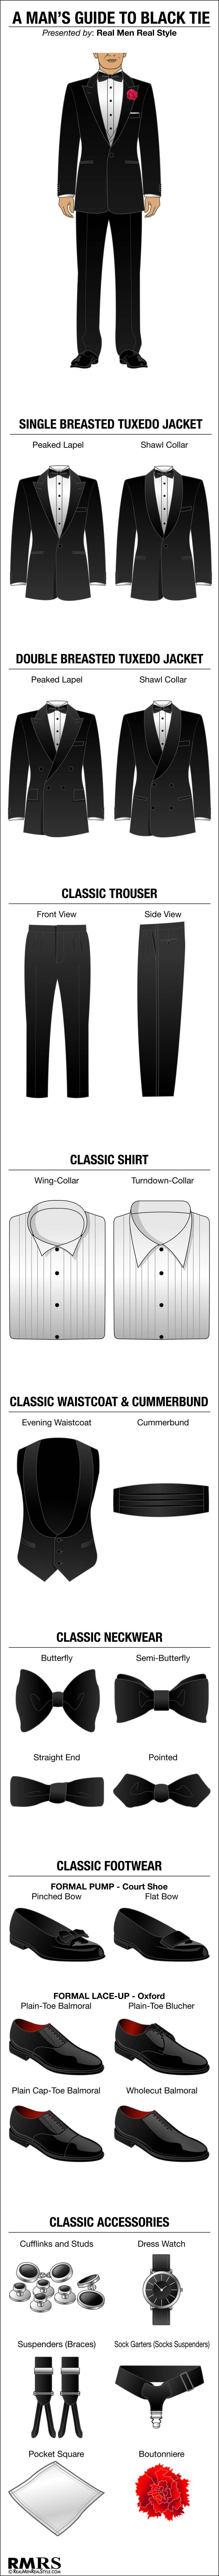 How To Wear Black Tie Infographic – Visual Guide To Wearing A Tuxedo